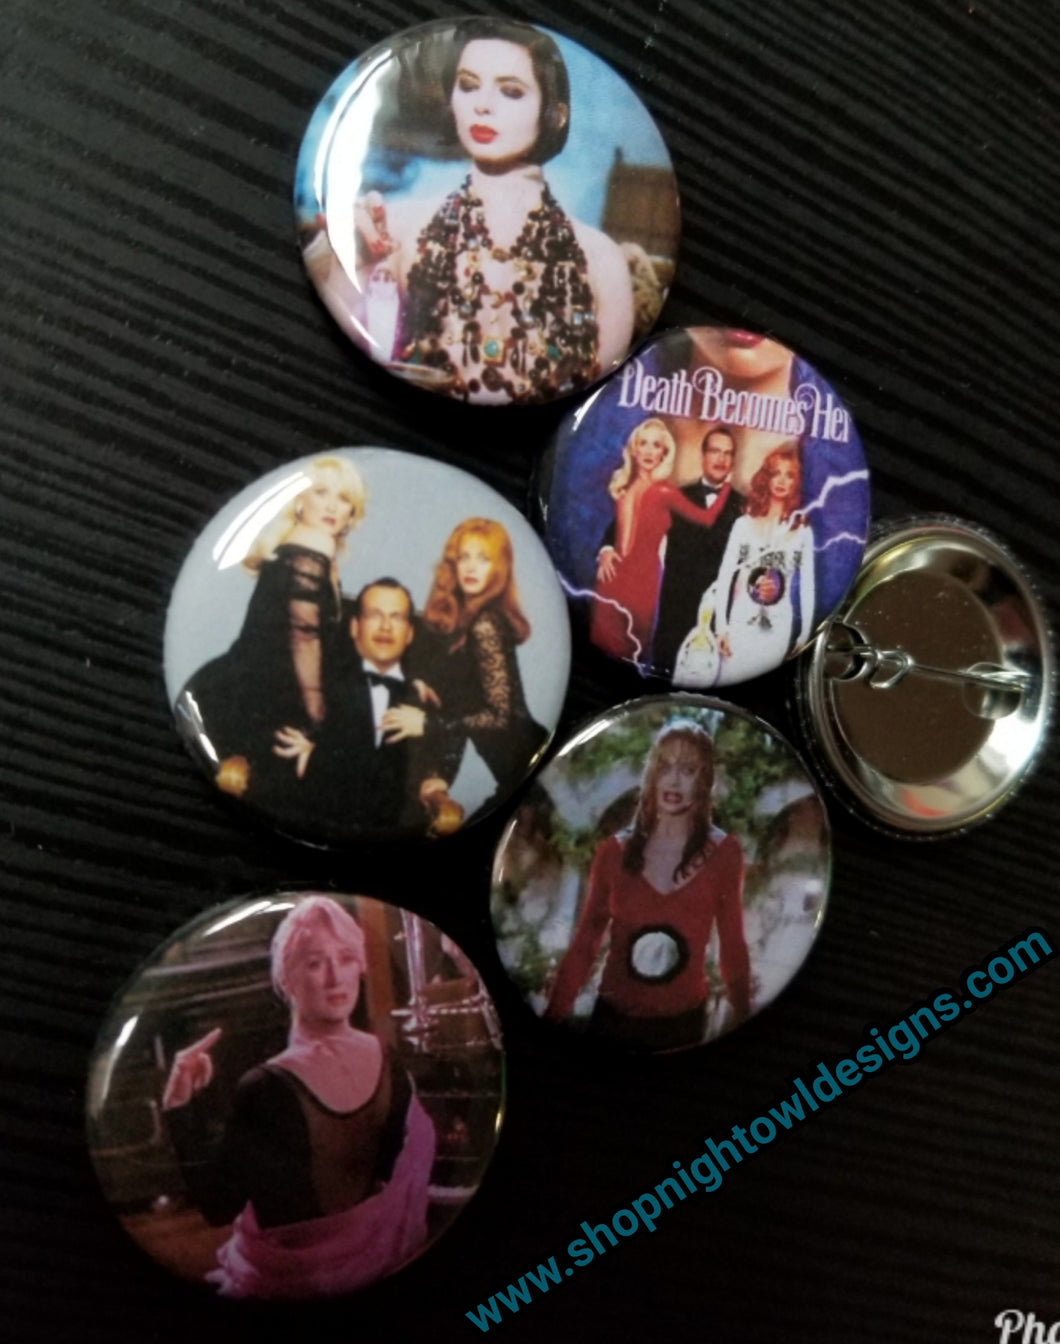 Death Becomes Her pin back buttons